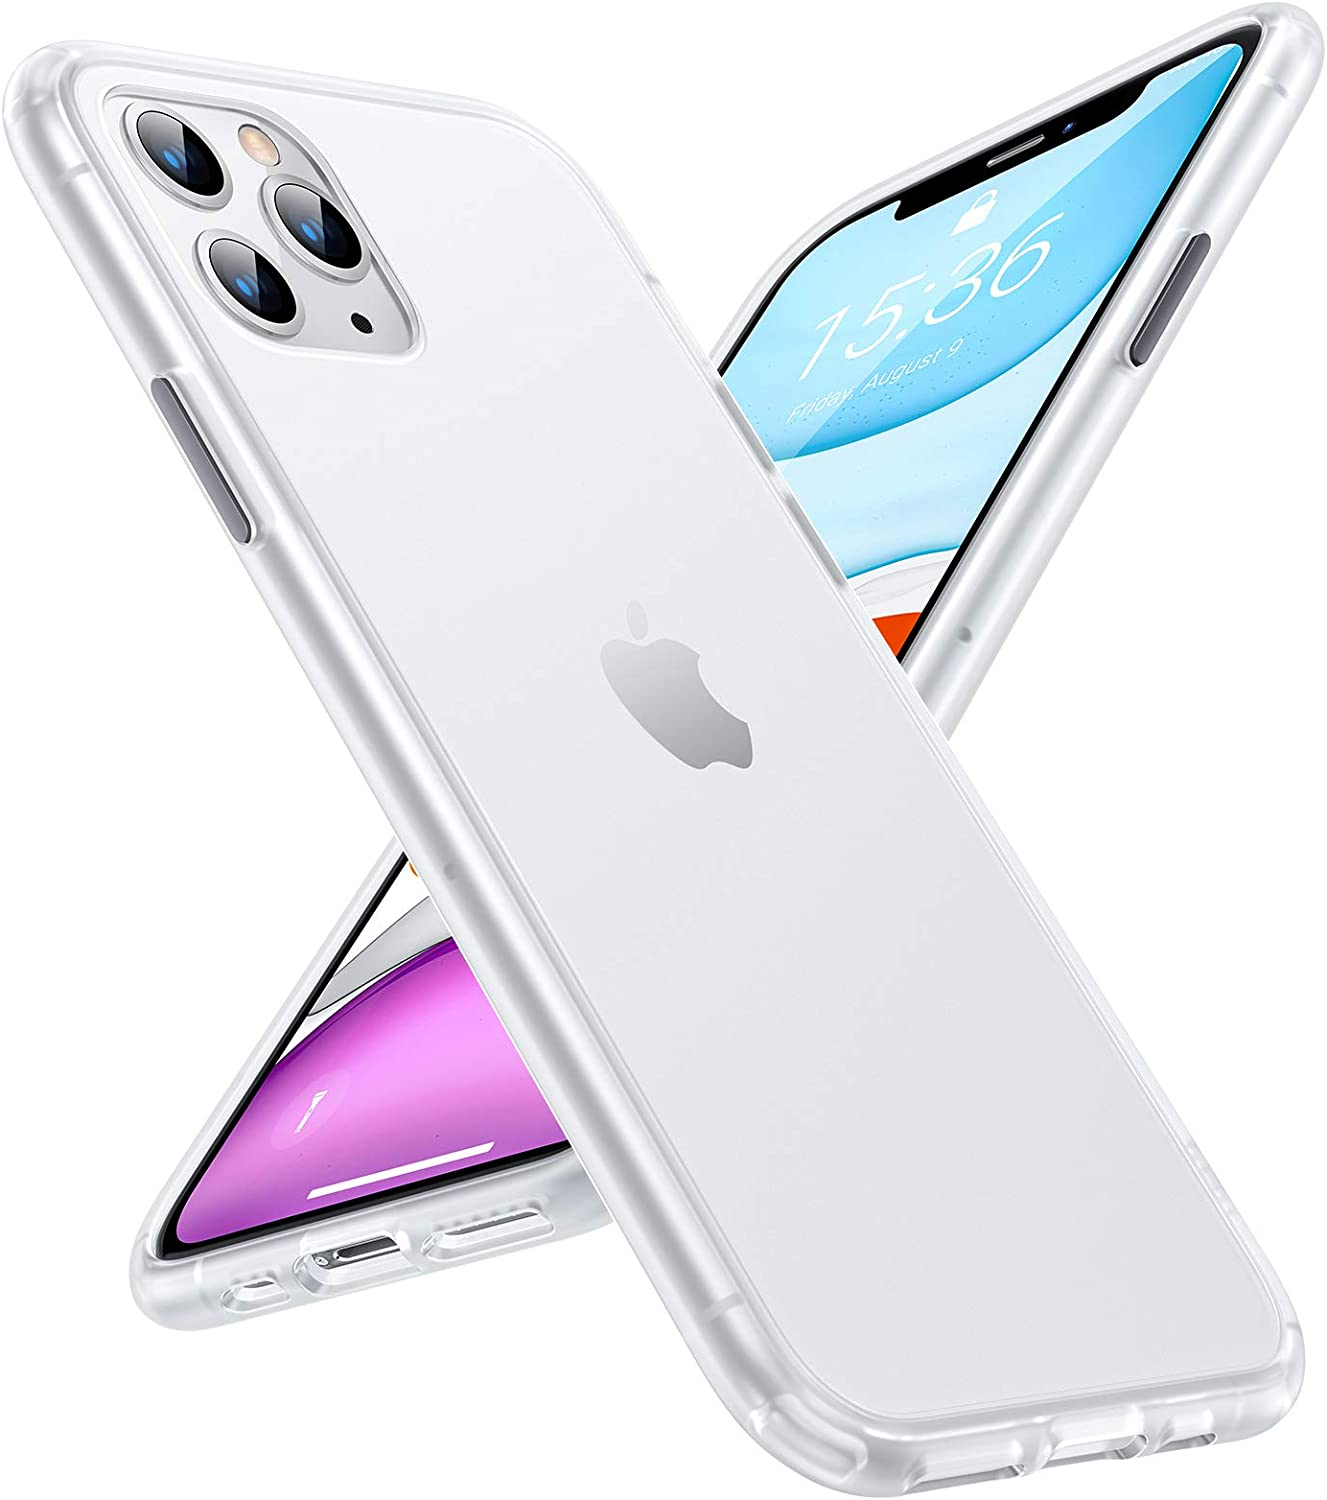 TORRAS Shockproof Compatible for iPhone 11 Pro Max Case, [Military Grade Drop Protection] [Anti-Scratches] Translucent Matte Hard PC Back with Soft Edges, Non-Slip Phone Case, Smoke White